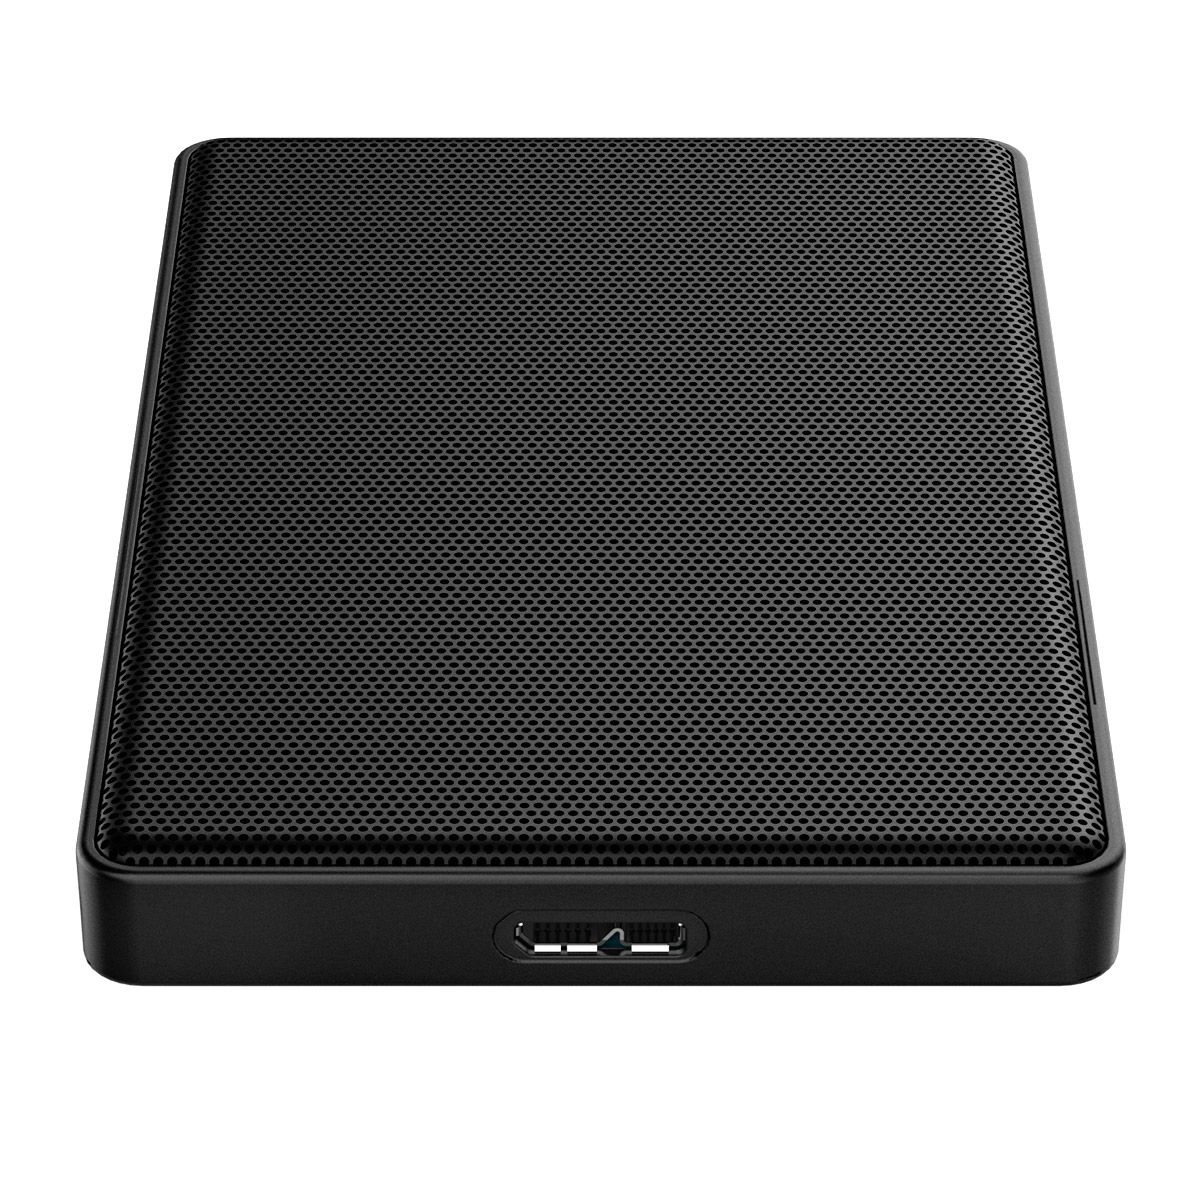 4tb Ssd 2tb Hdd 25 Inch Usb30 Sata Hard Drive Enclosure External Orico Phd Shockproof Case For 25inch Harddisk And Gadgets Pc